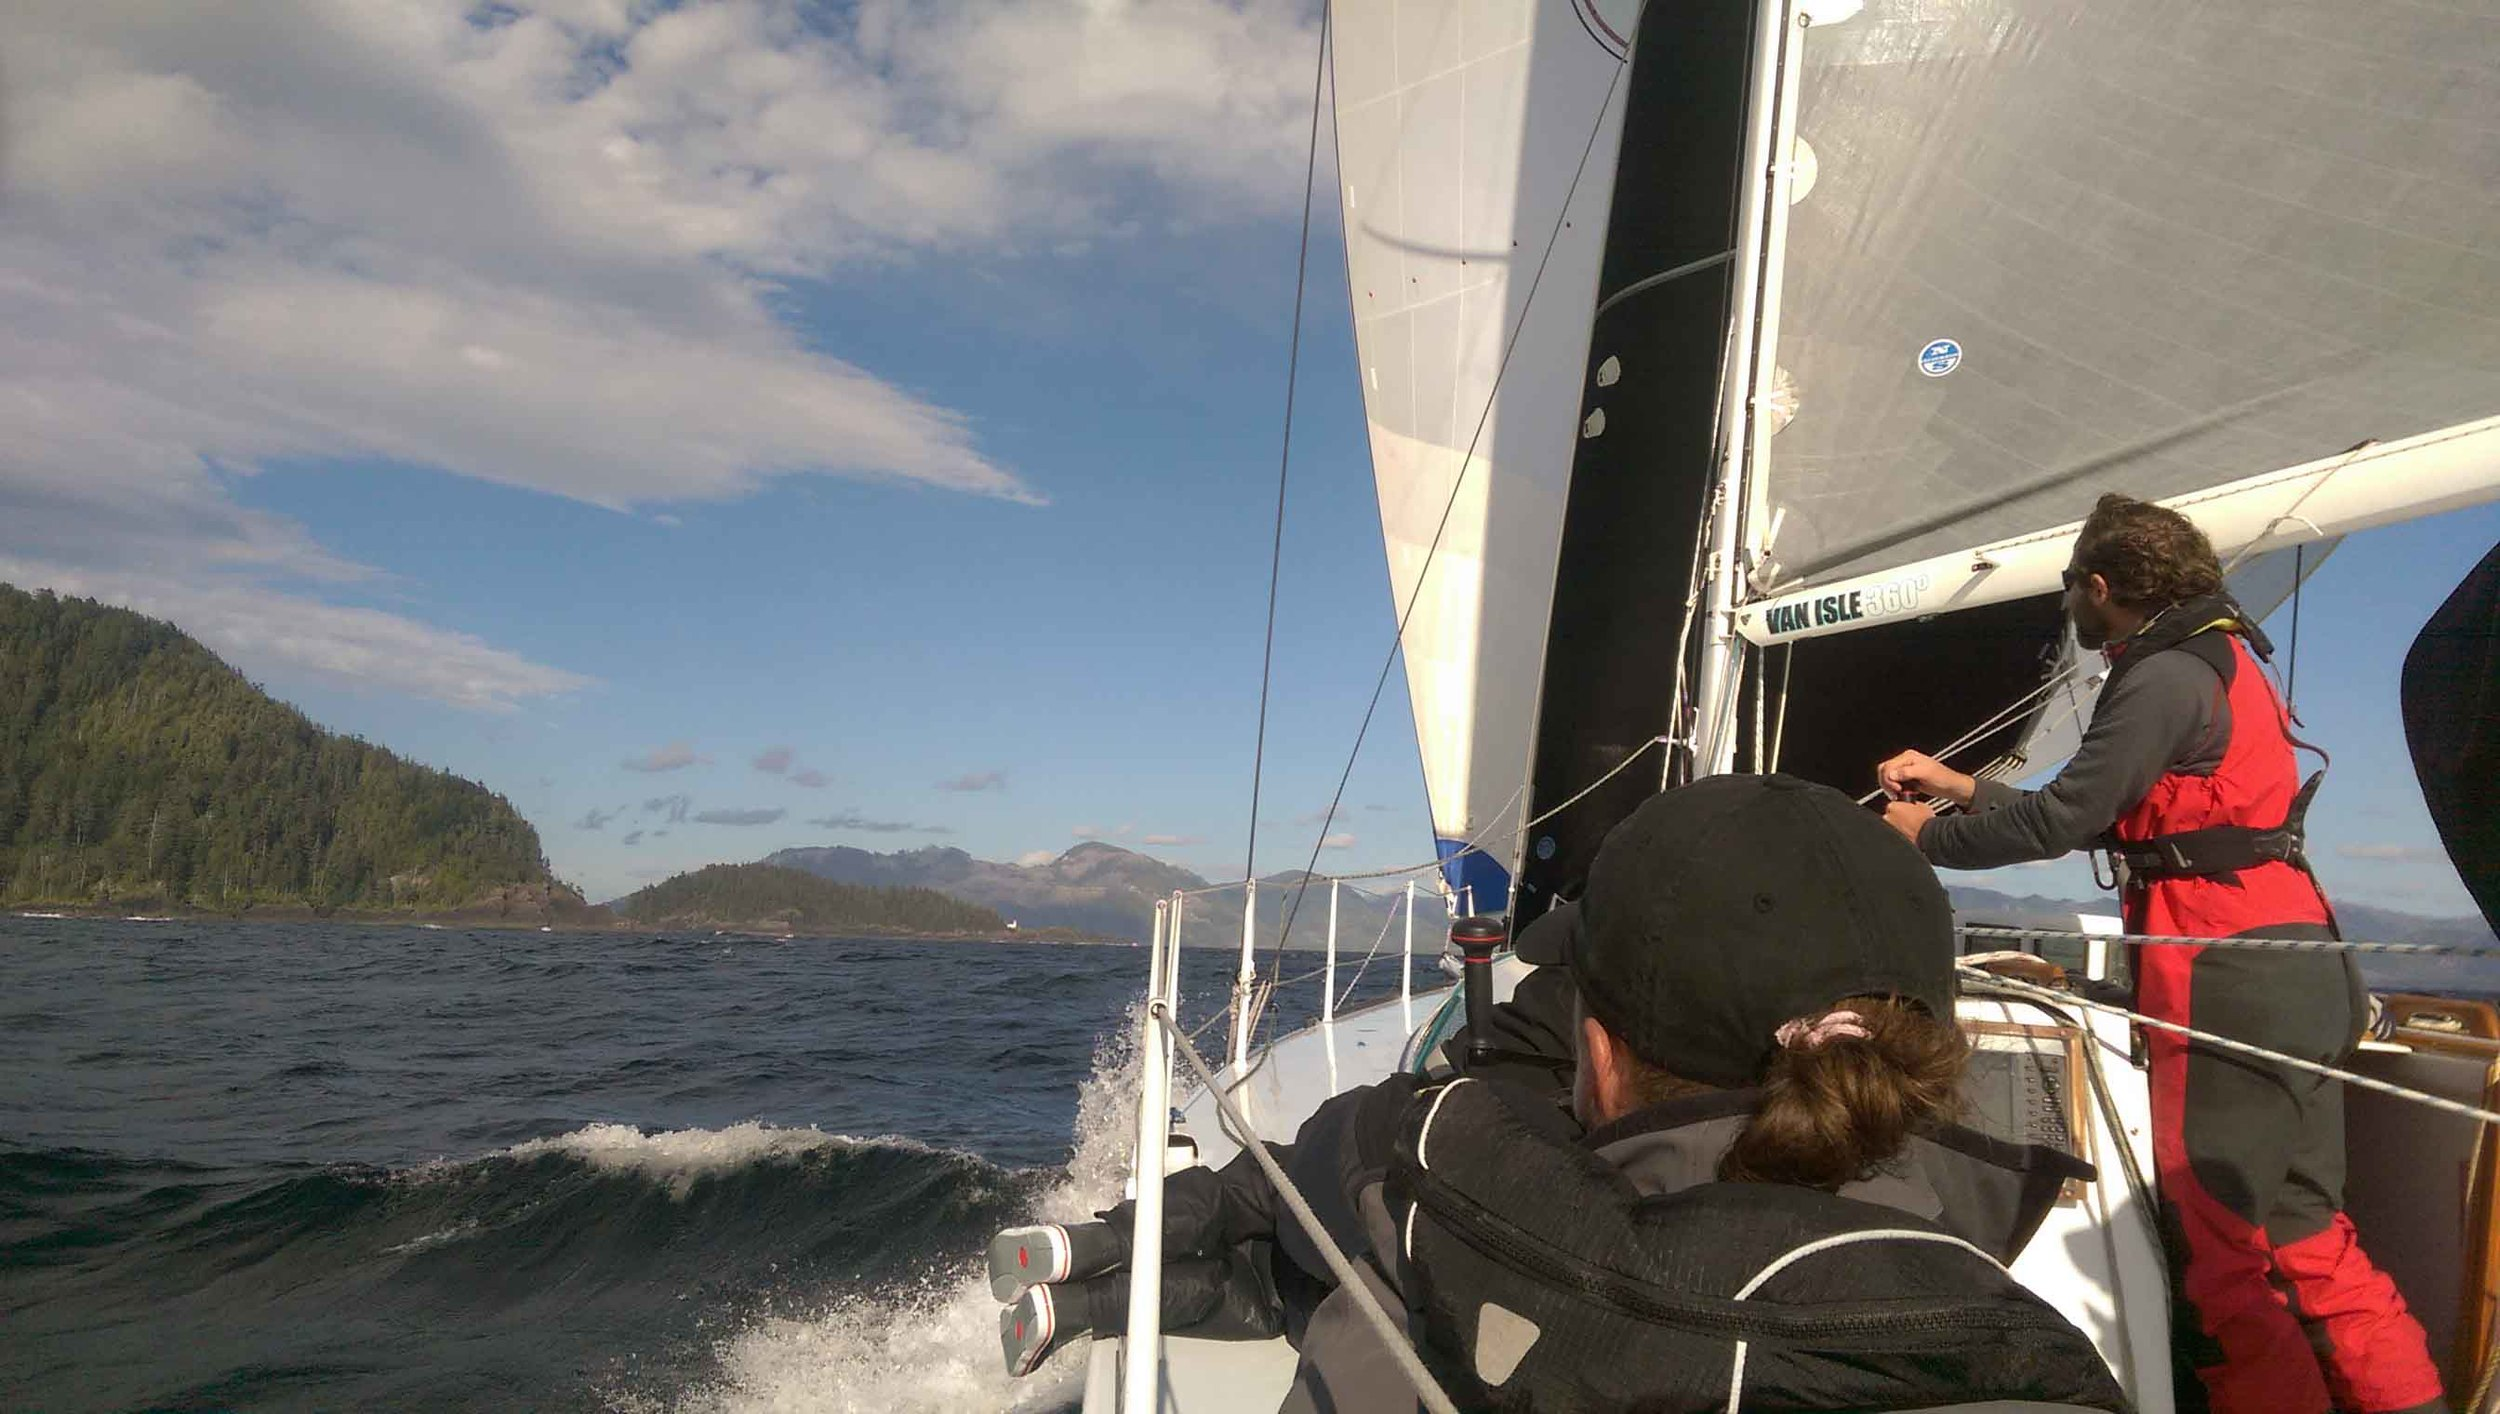 Ripping downwind to Winter Harbor.